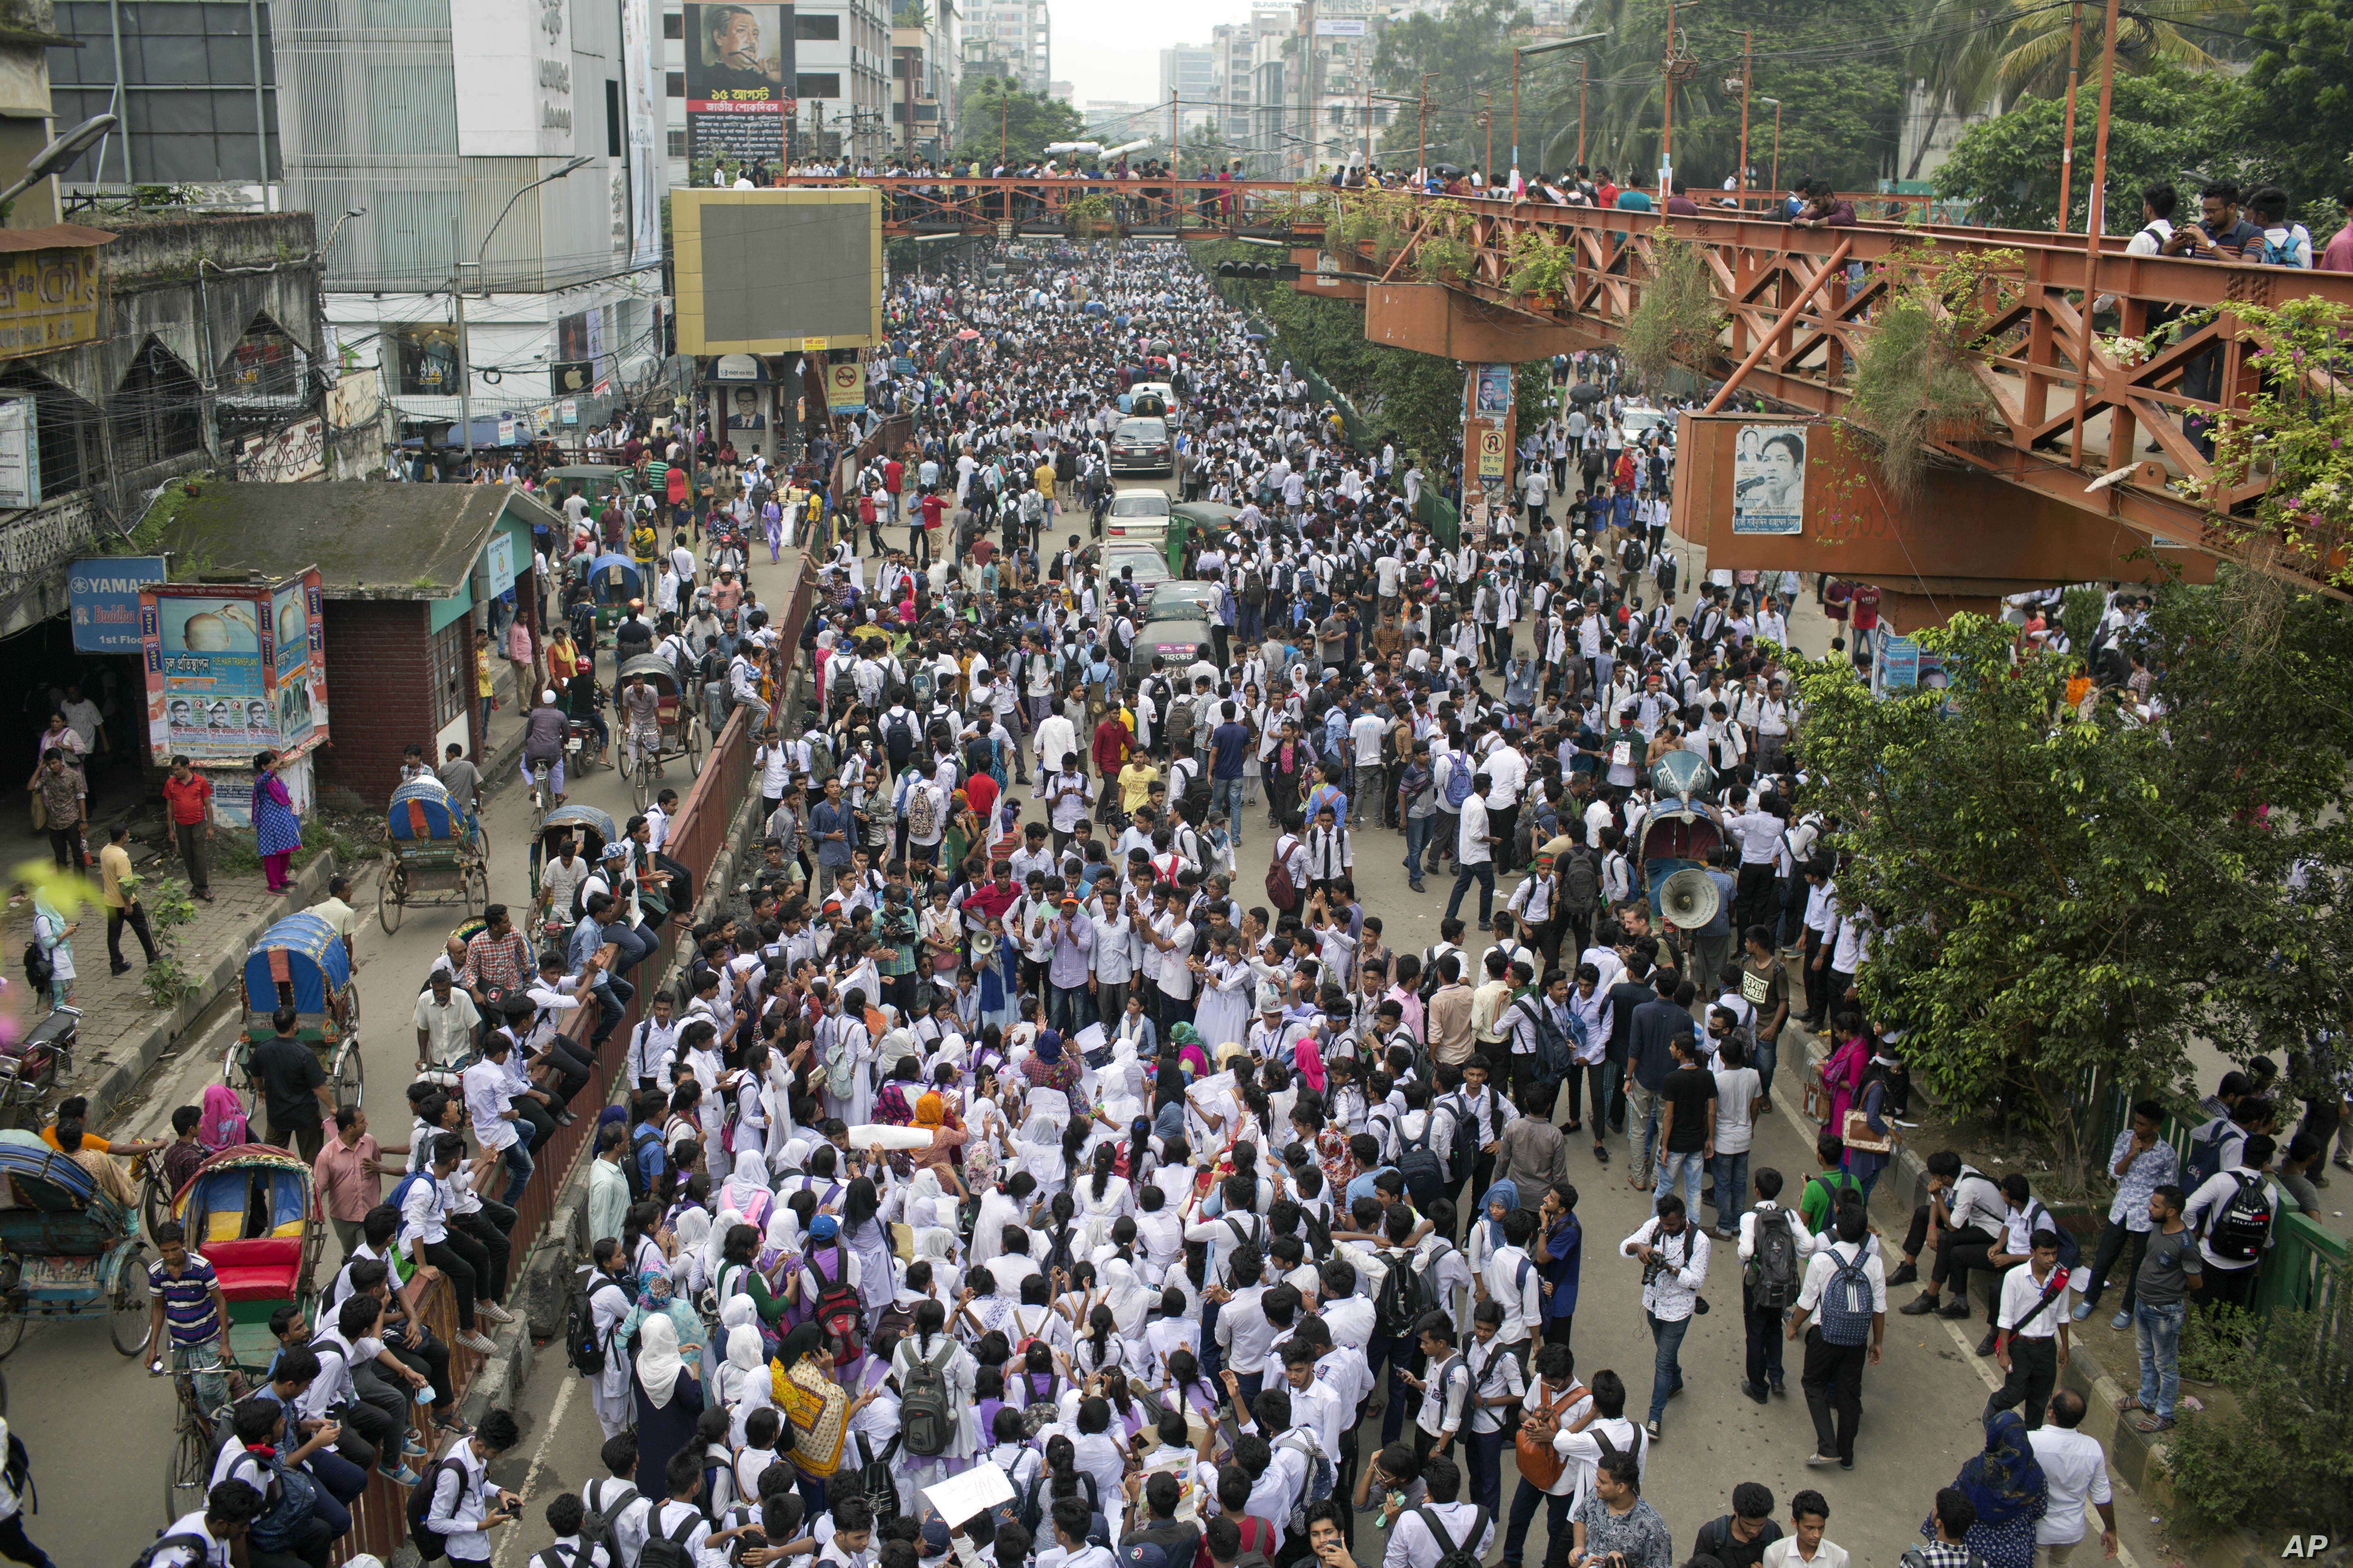 Bangladeshi students shout slogans and block a road during a protest in Dhaka, Bangladesh, Aug. 4, 2018. Days of protests by tens of thousands of students angry about the traffic deaths of two of their colleagues have largely cut off the capital, Dha...